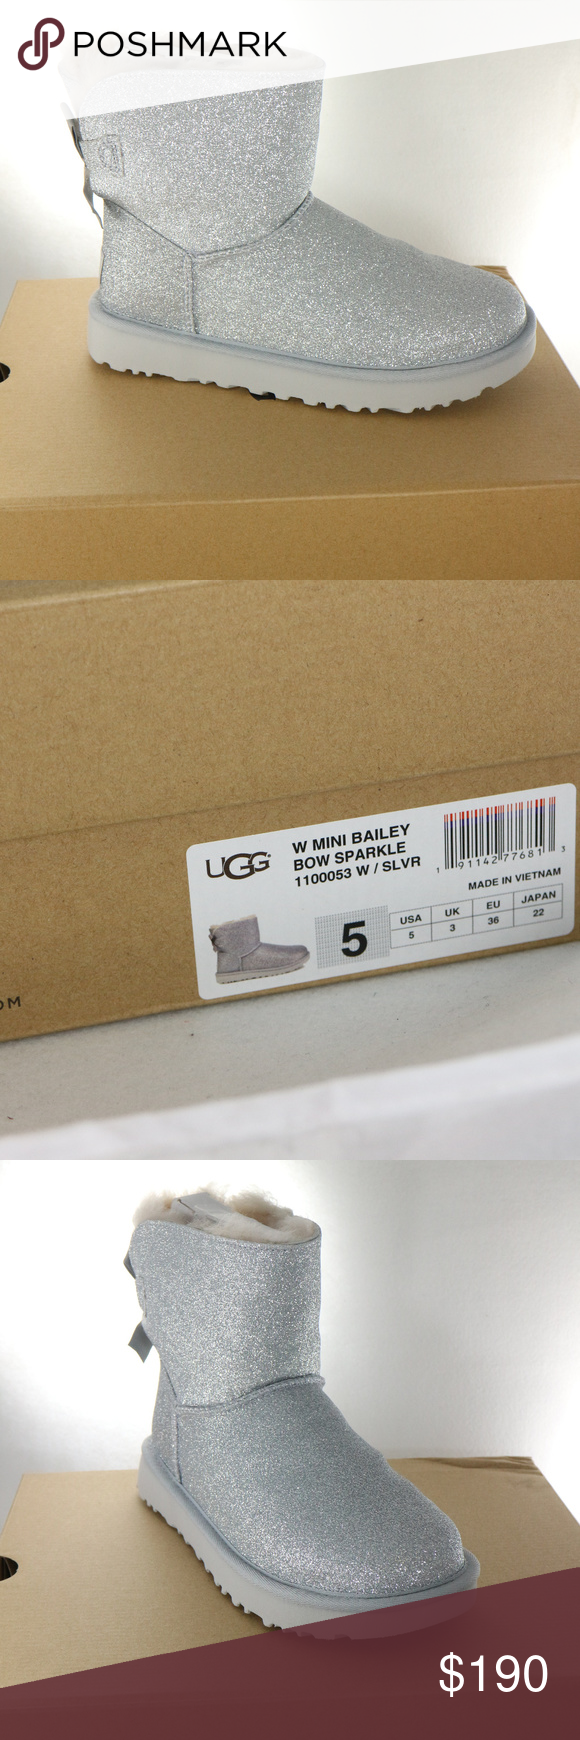 72c7f9b9a0c RARE UGG Womens Mini Bailey Bow Sparkle Boots All new, rare Mini ...